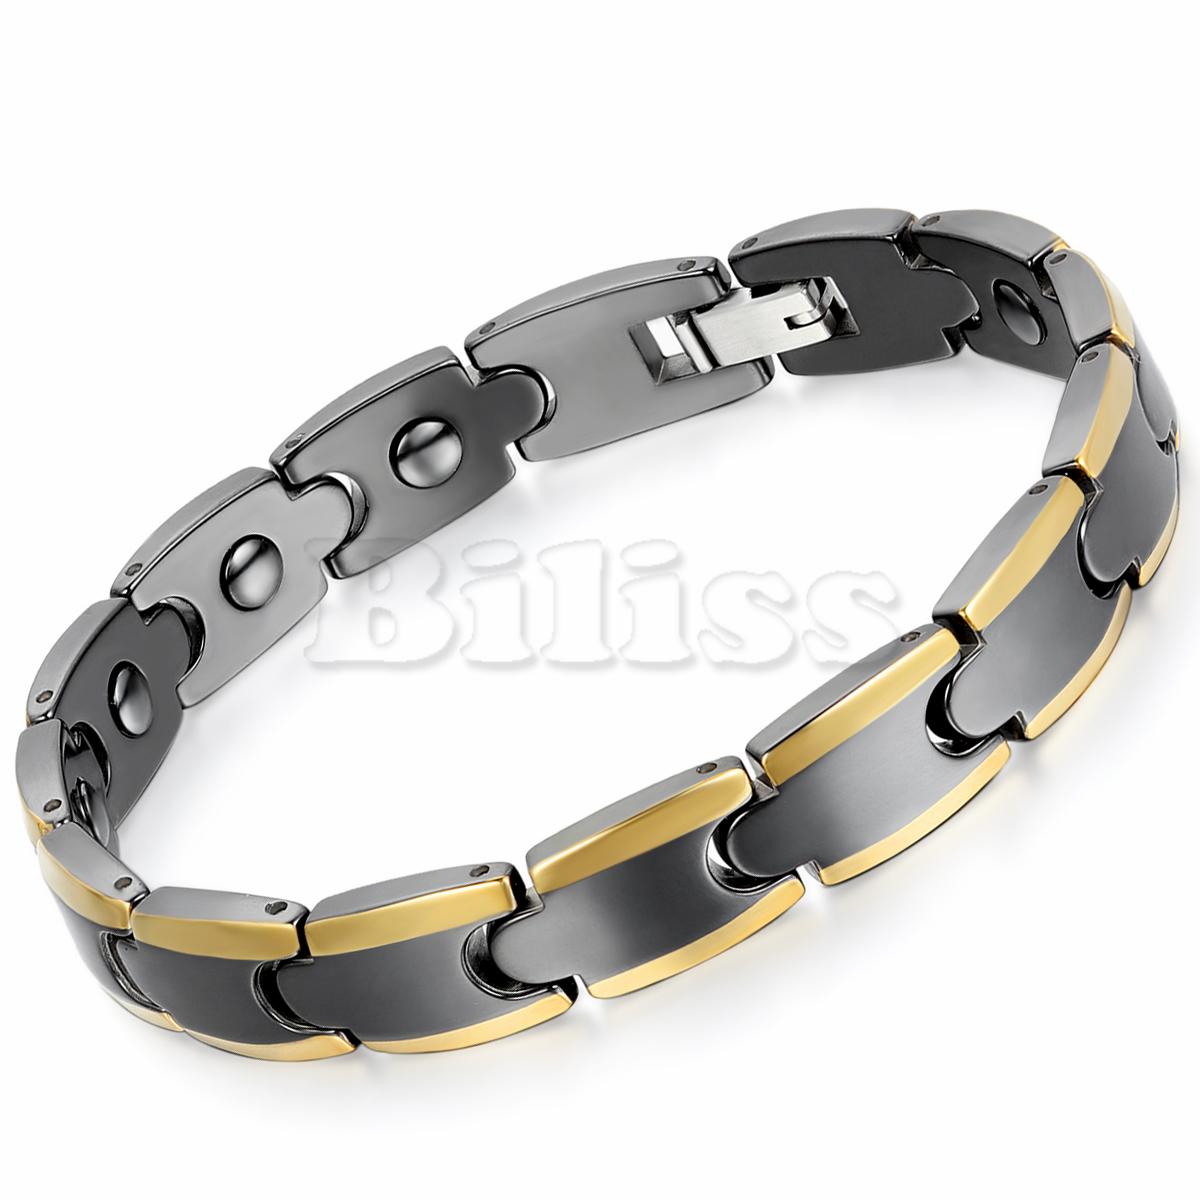 black lyst bracelet gold mens product jet jewelry leather normal men tone rose cross swarovski gallery s